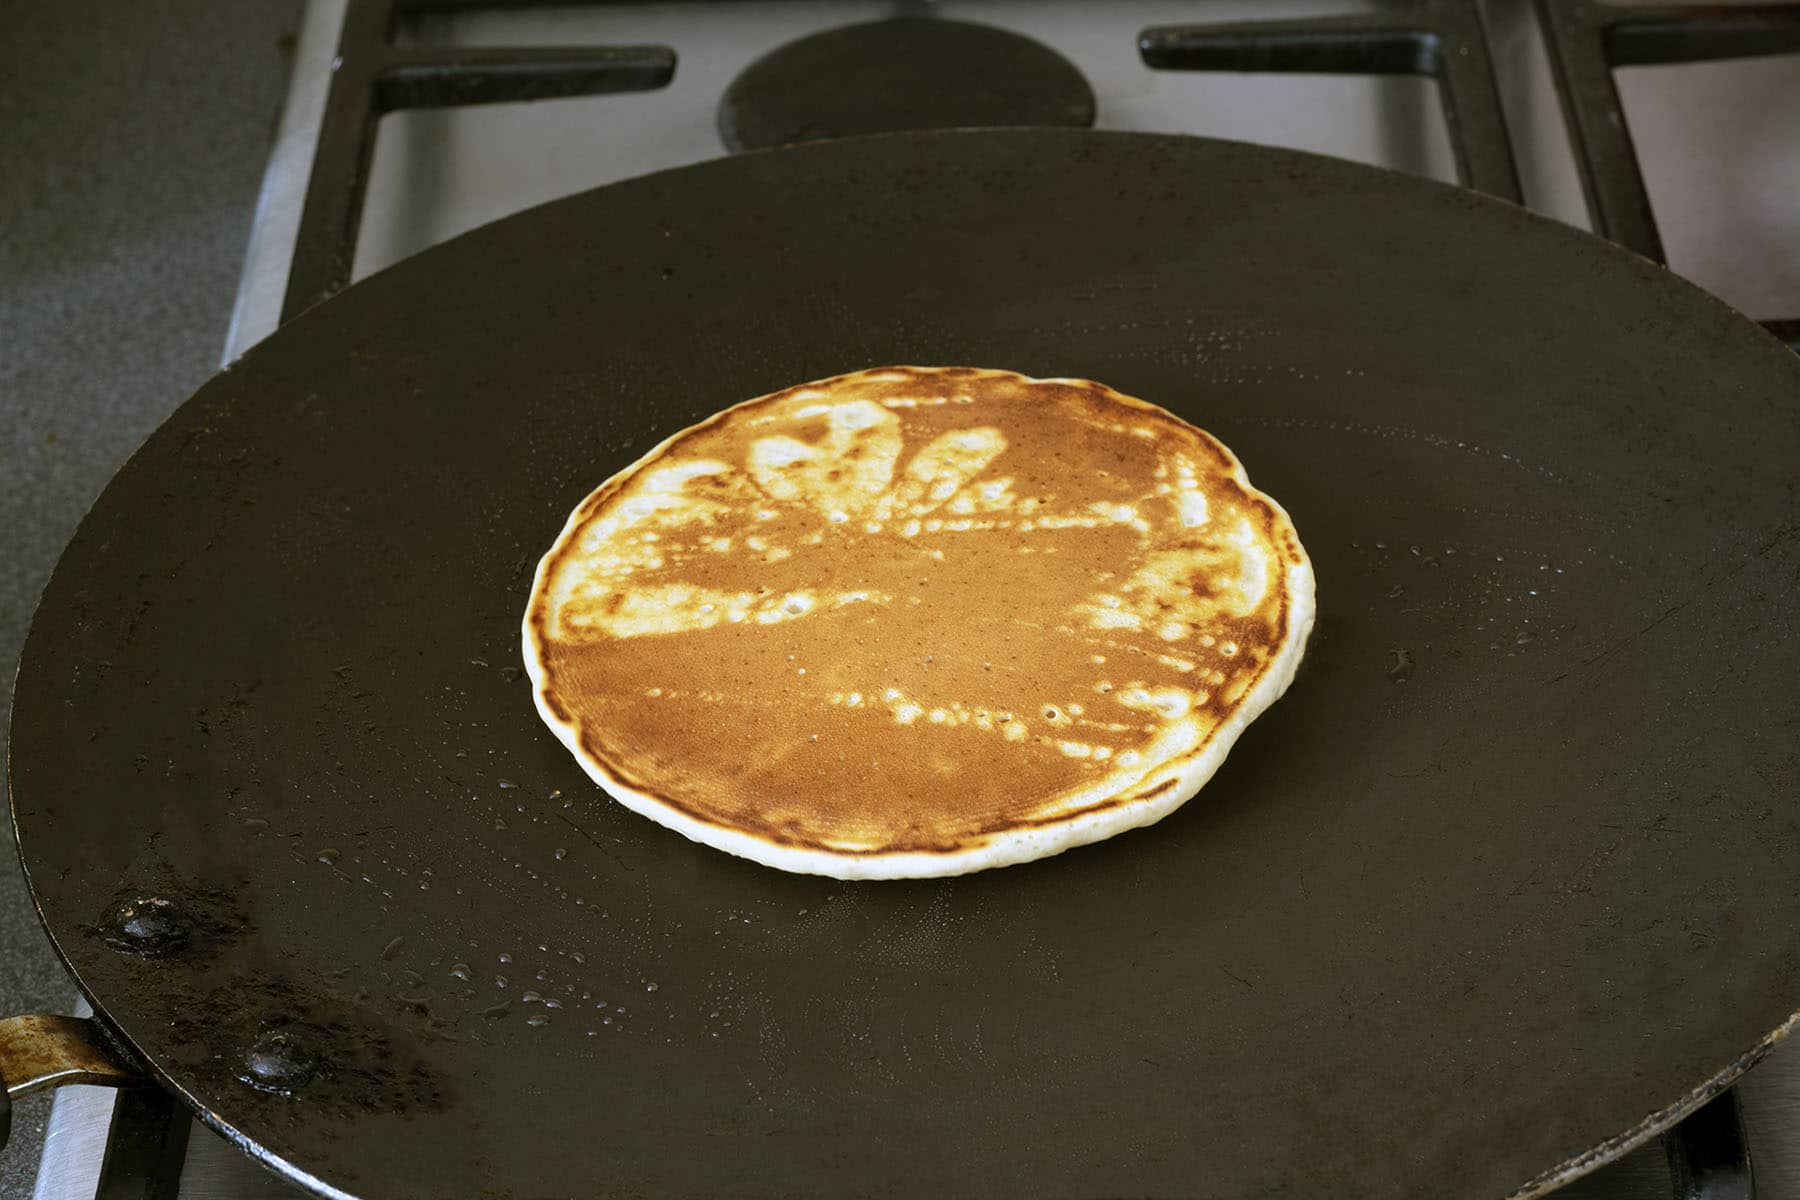 pancake cooking on frying pan over gas hob